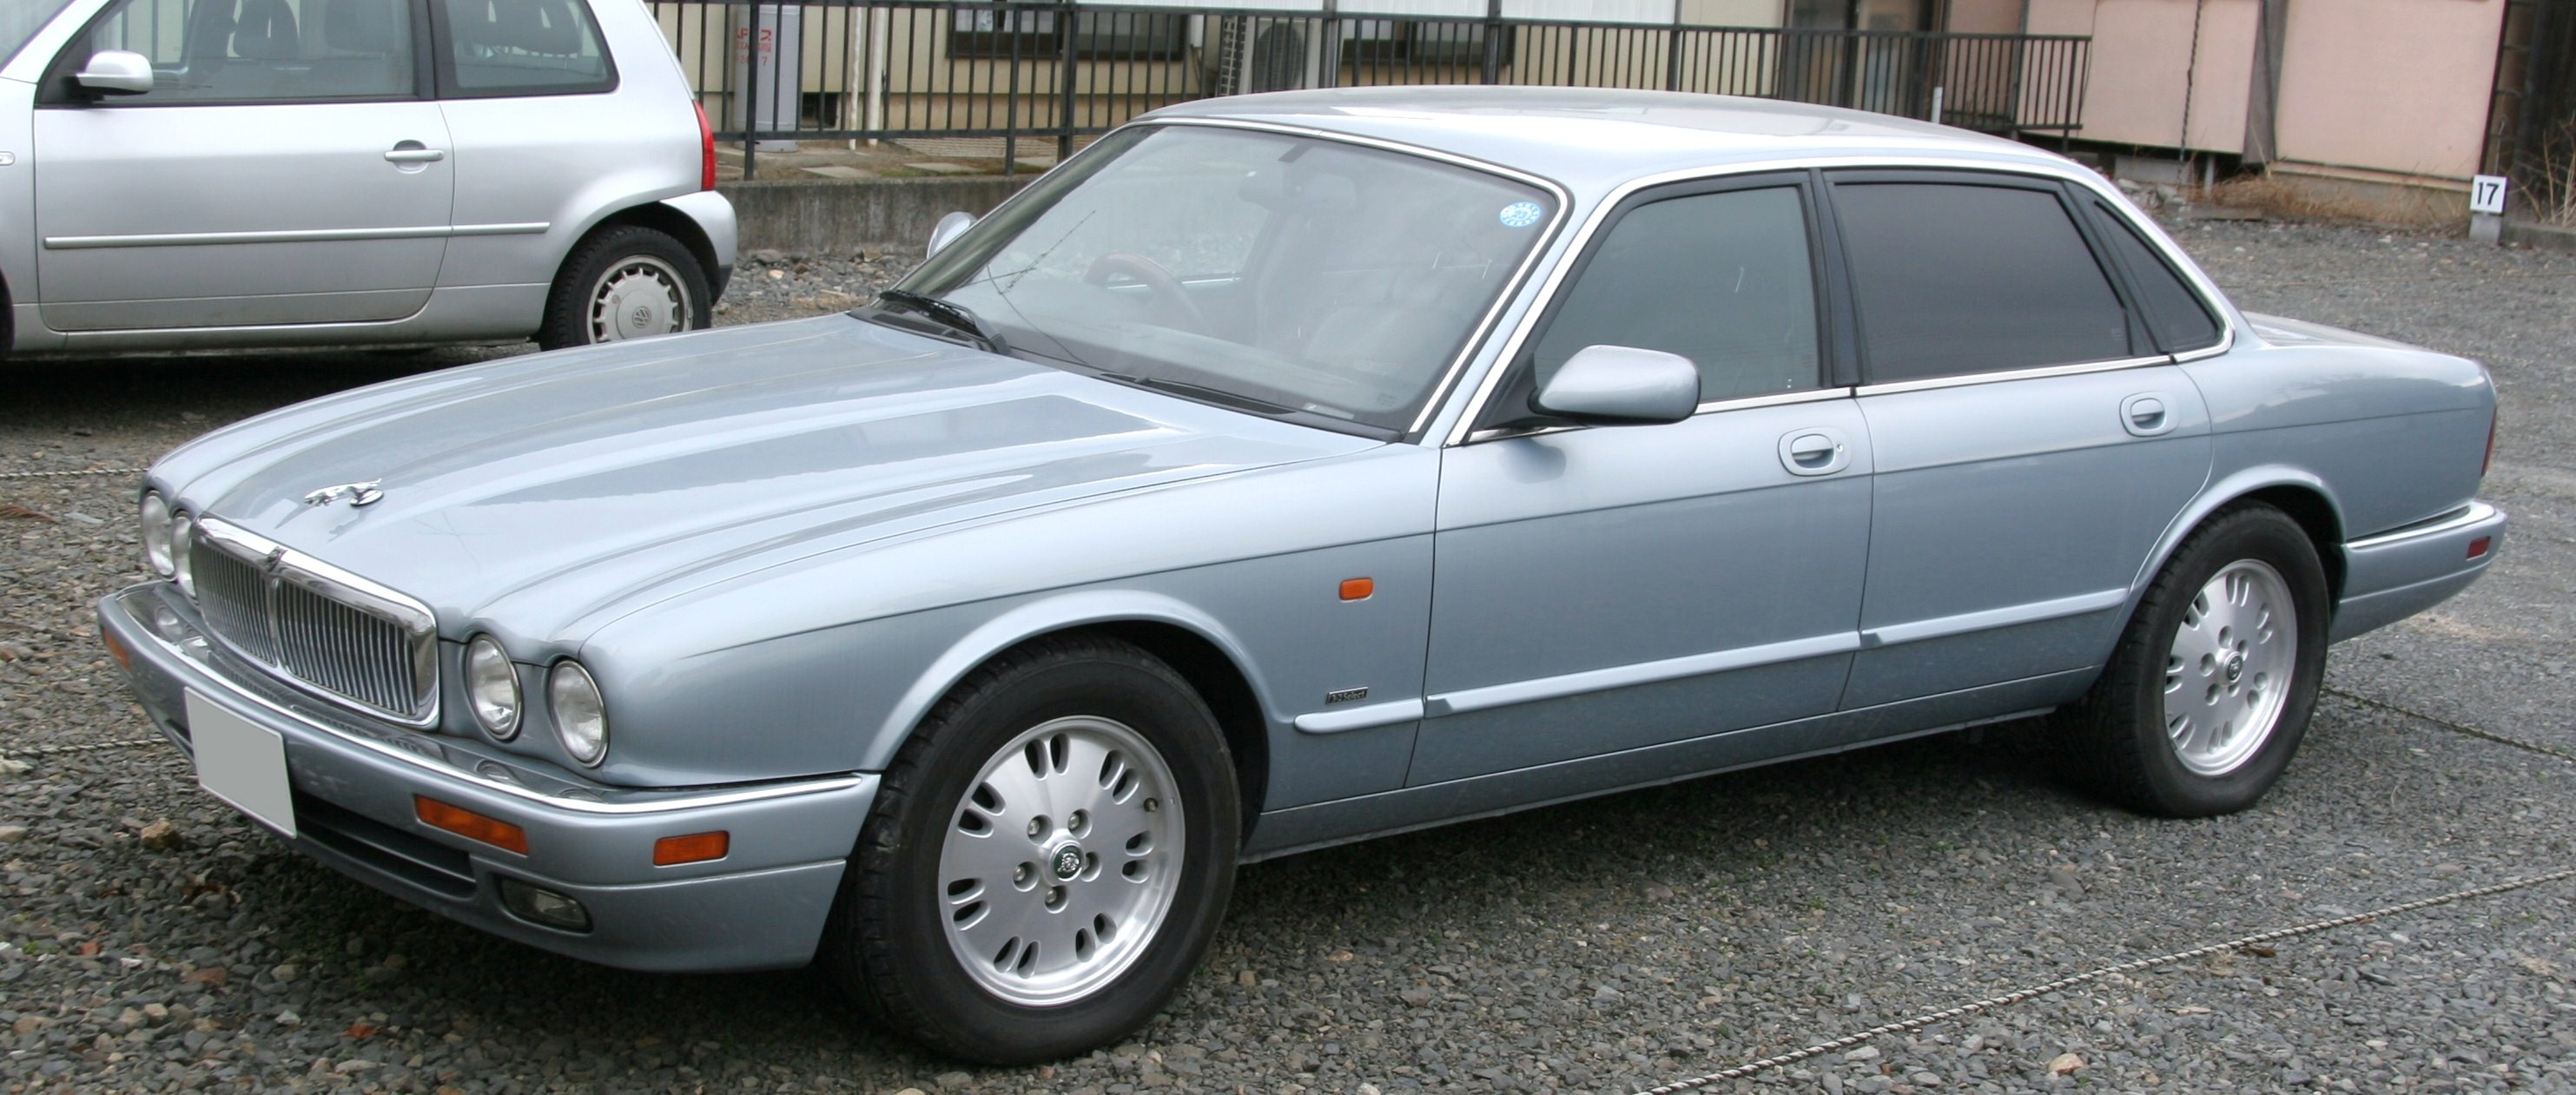 1995 Jaguar Xj-series #5